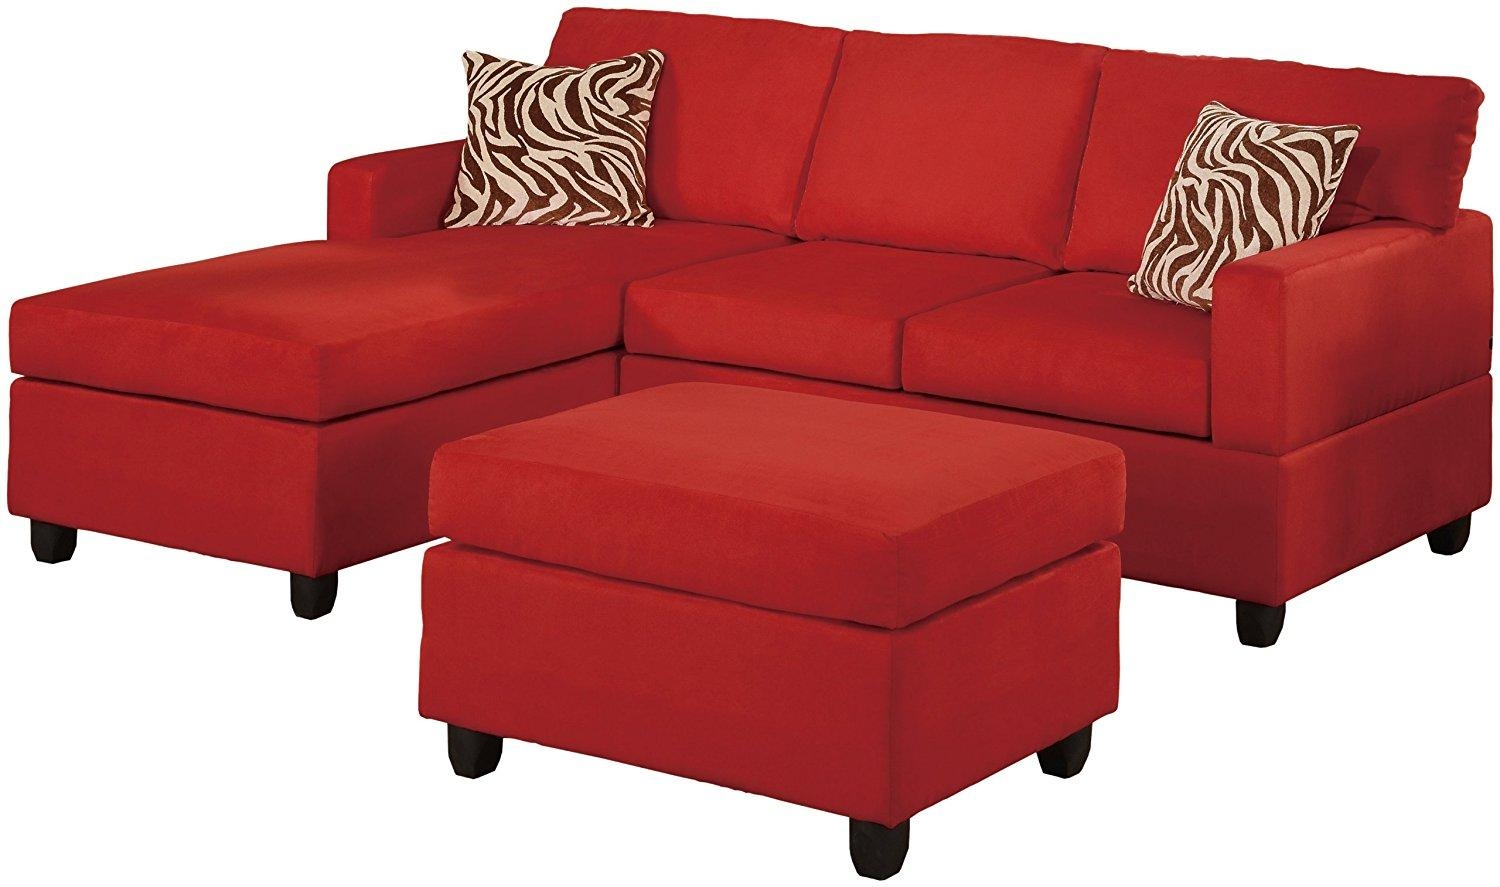 Cheap Red Sofas 29 With Cheap Red Sofas | Jinanhongyu For Cheap Red Sofas (View 3 of 20)